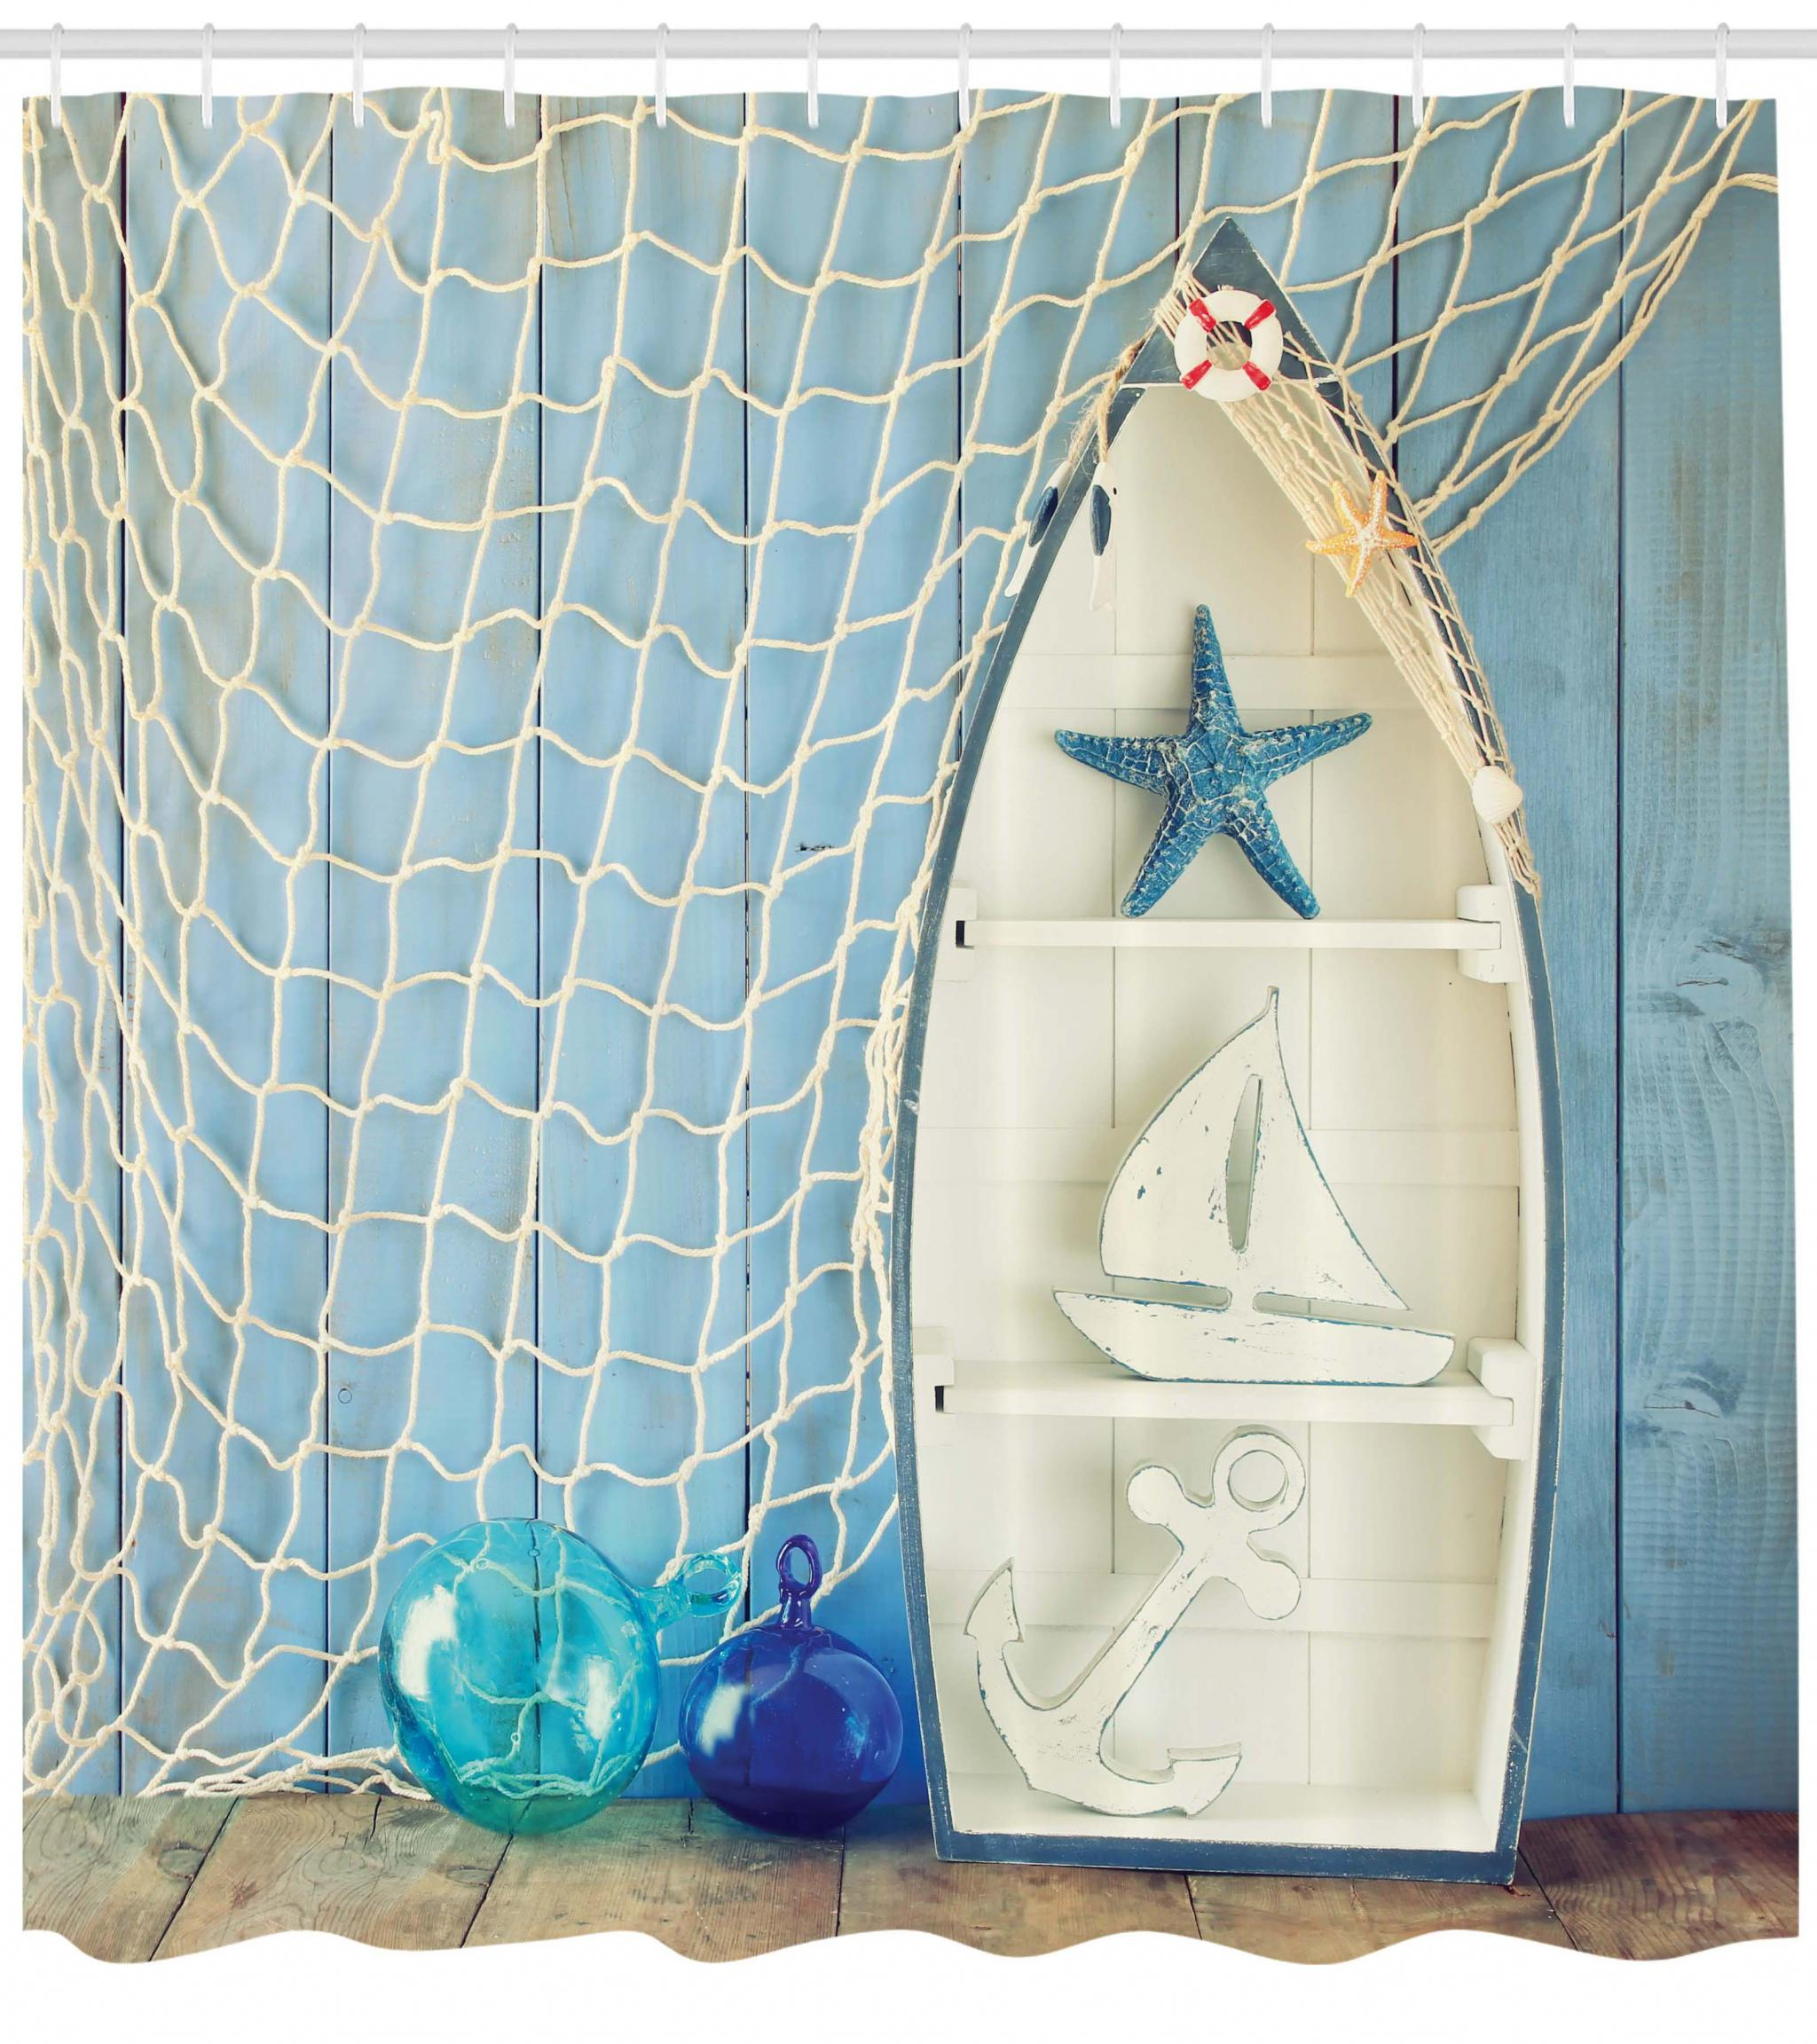 Nautical Shower Curtain Sea Objects On Wooden Backdrop With